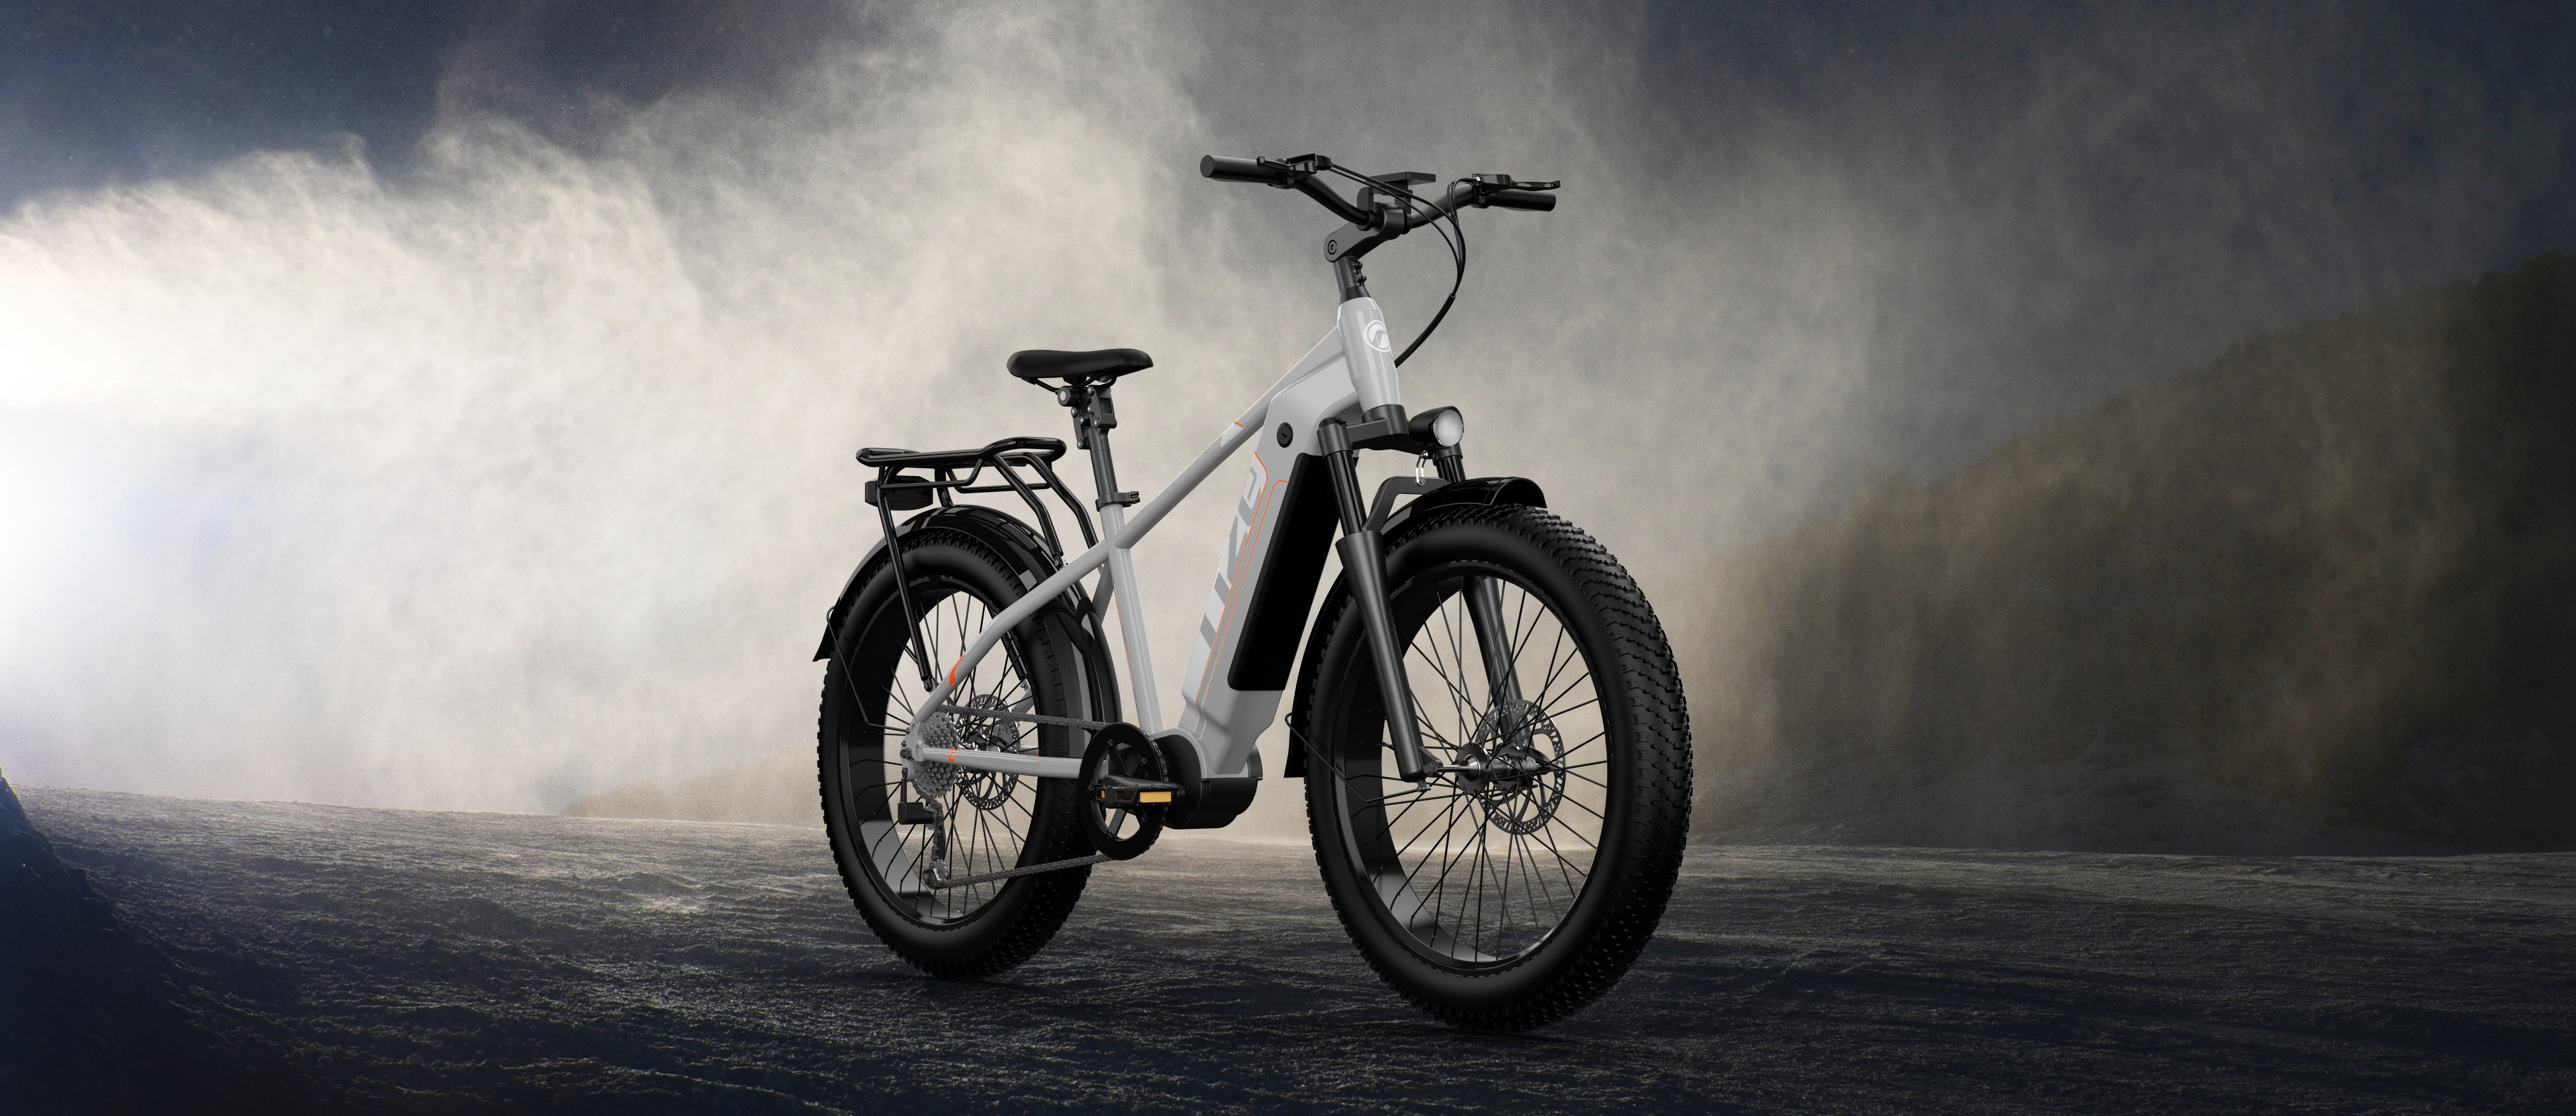 Built for off-road adventures, the RX Pro is one of 15 ebikes in the 2021 range from Rize Bikes